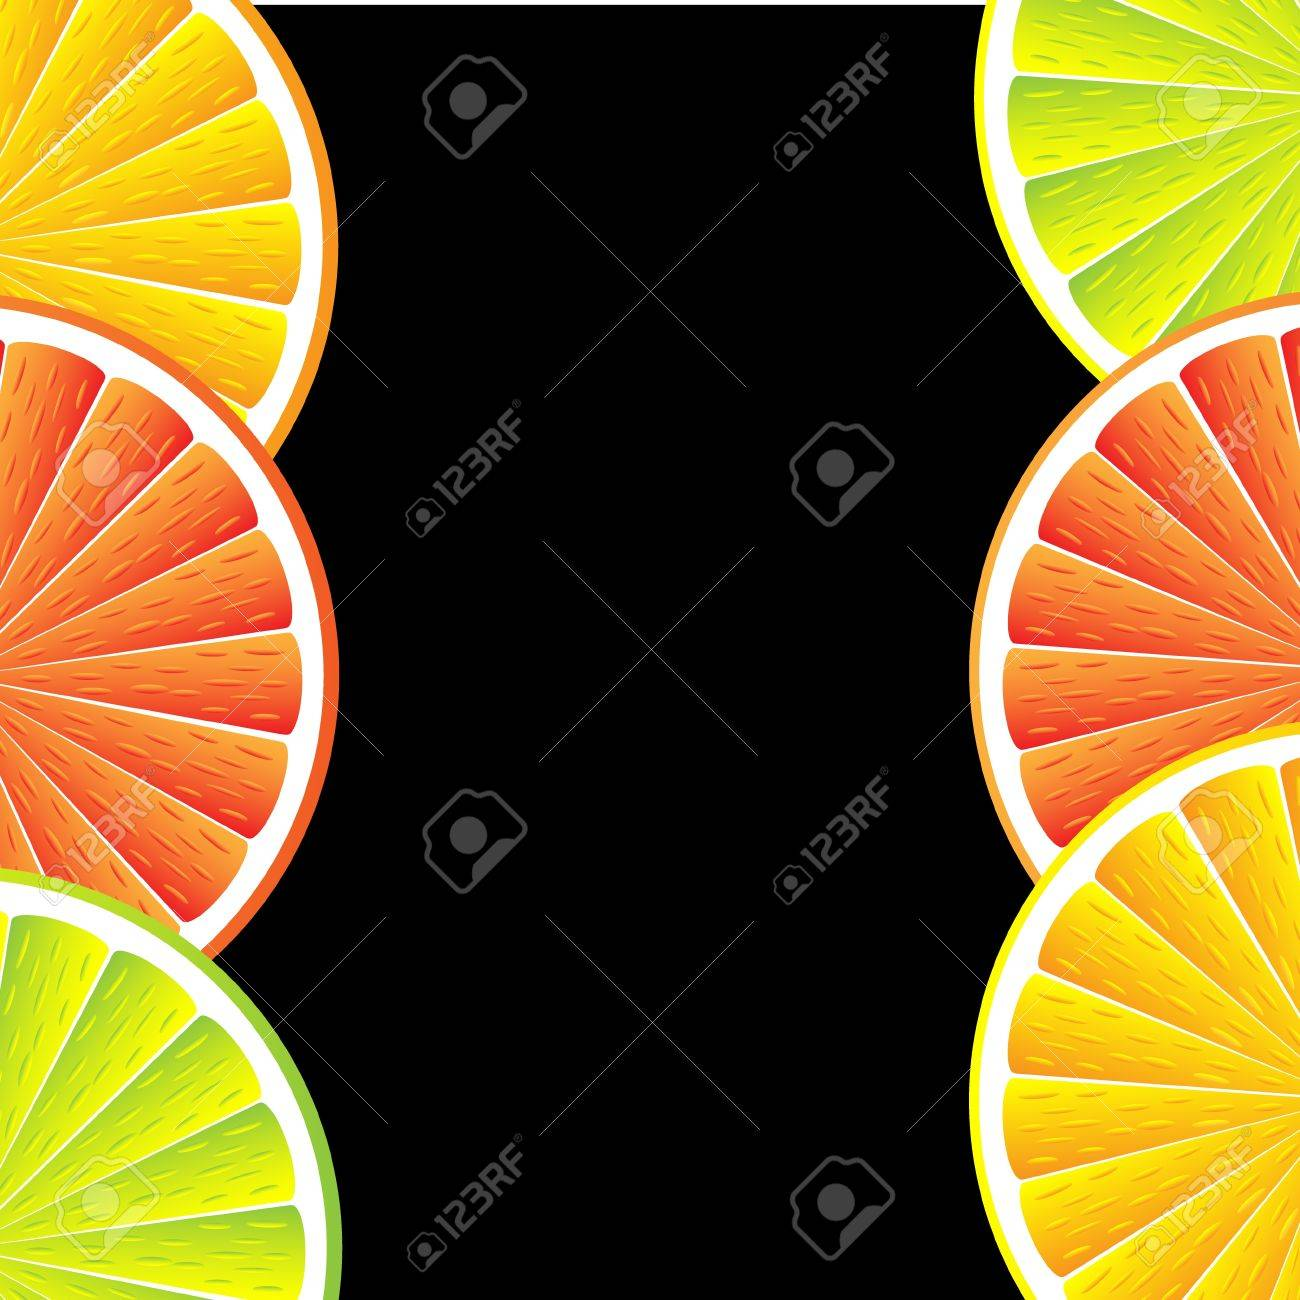 Citrus background with slices of lemon, grapefruit and orange. Vector stylized background. Stock Vector - 11087203